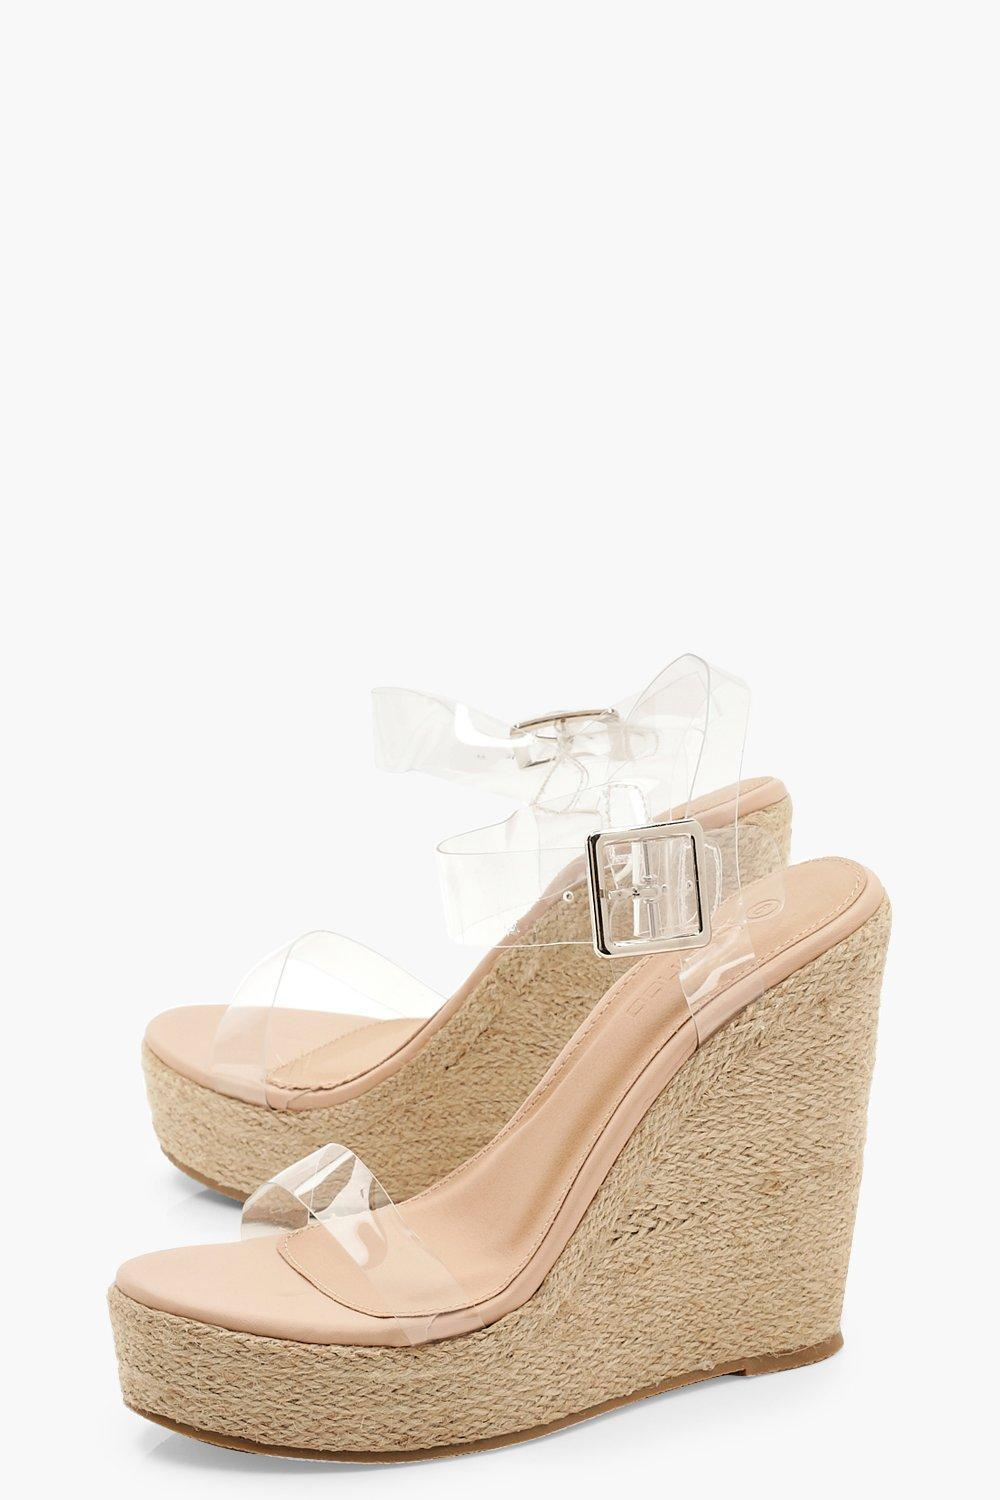 915d9faa391 Boohoo - Multicolor Clear Strap Espadrille Wedges - Lyst. View fullscreen